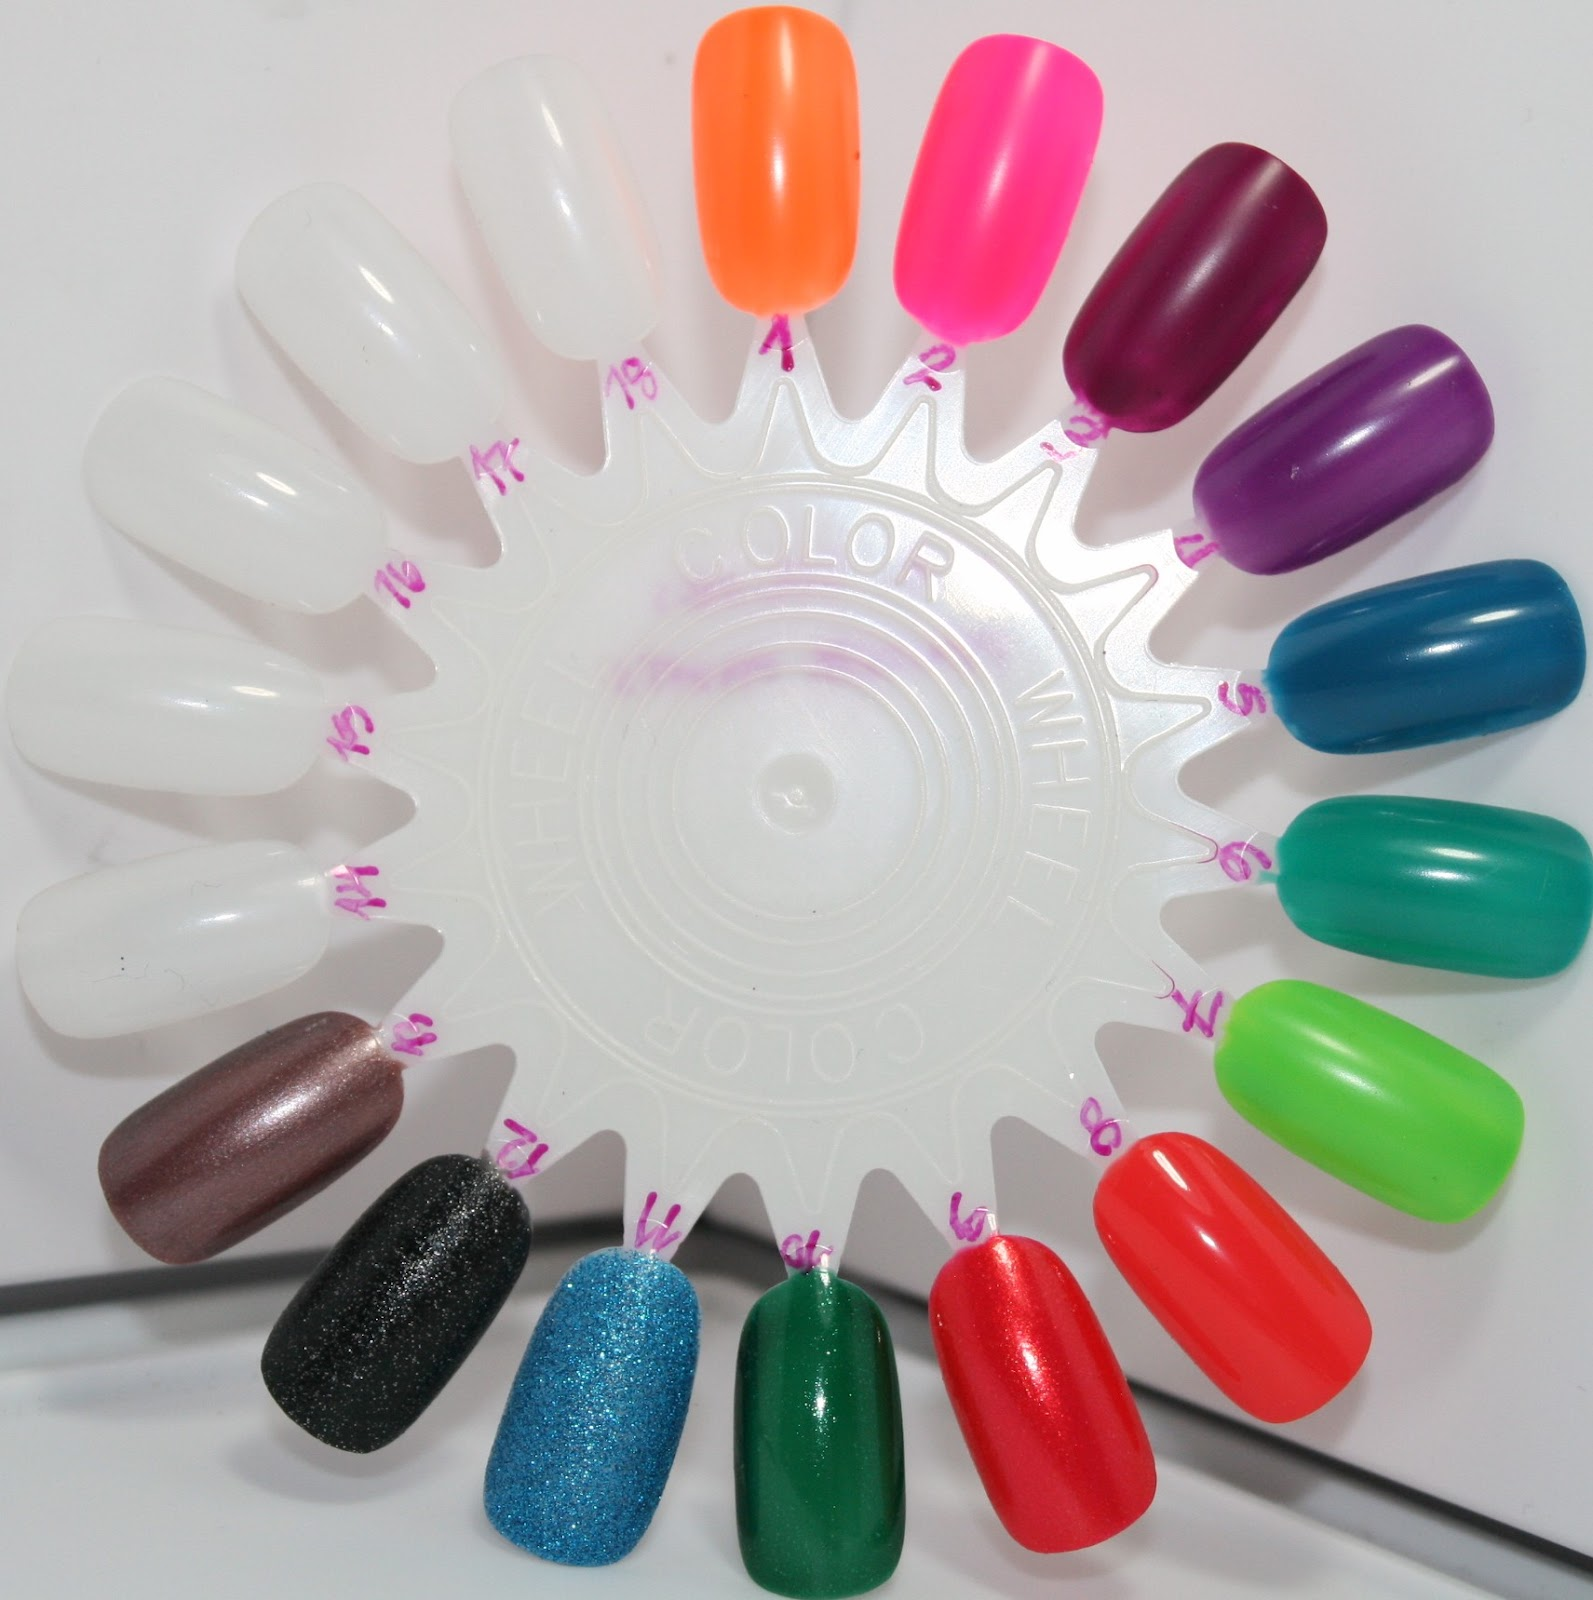 vibrancy on a brush: Nail Polish Collection & Swatches - LA Colors ...